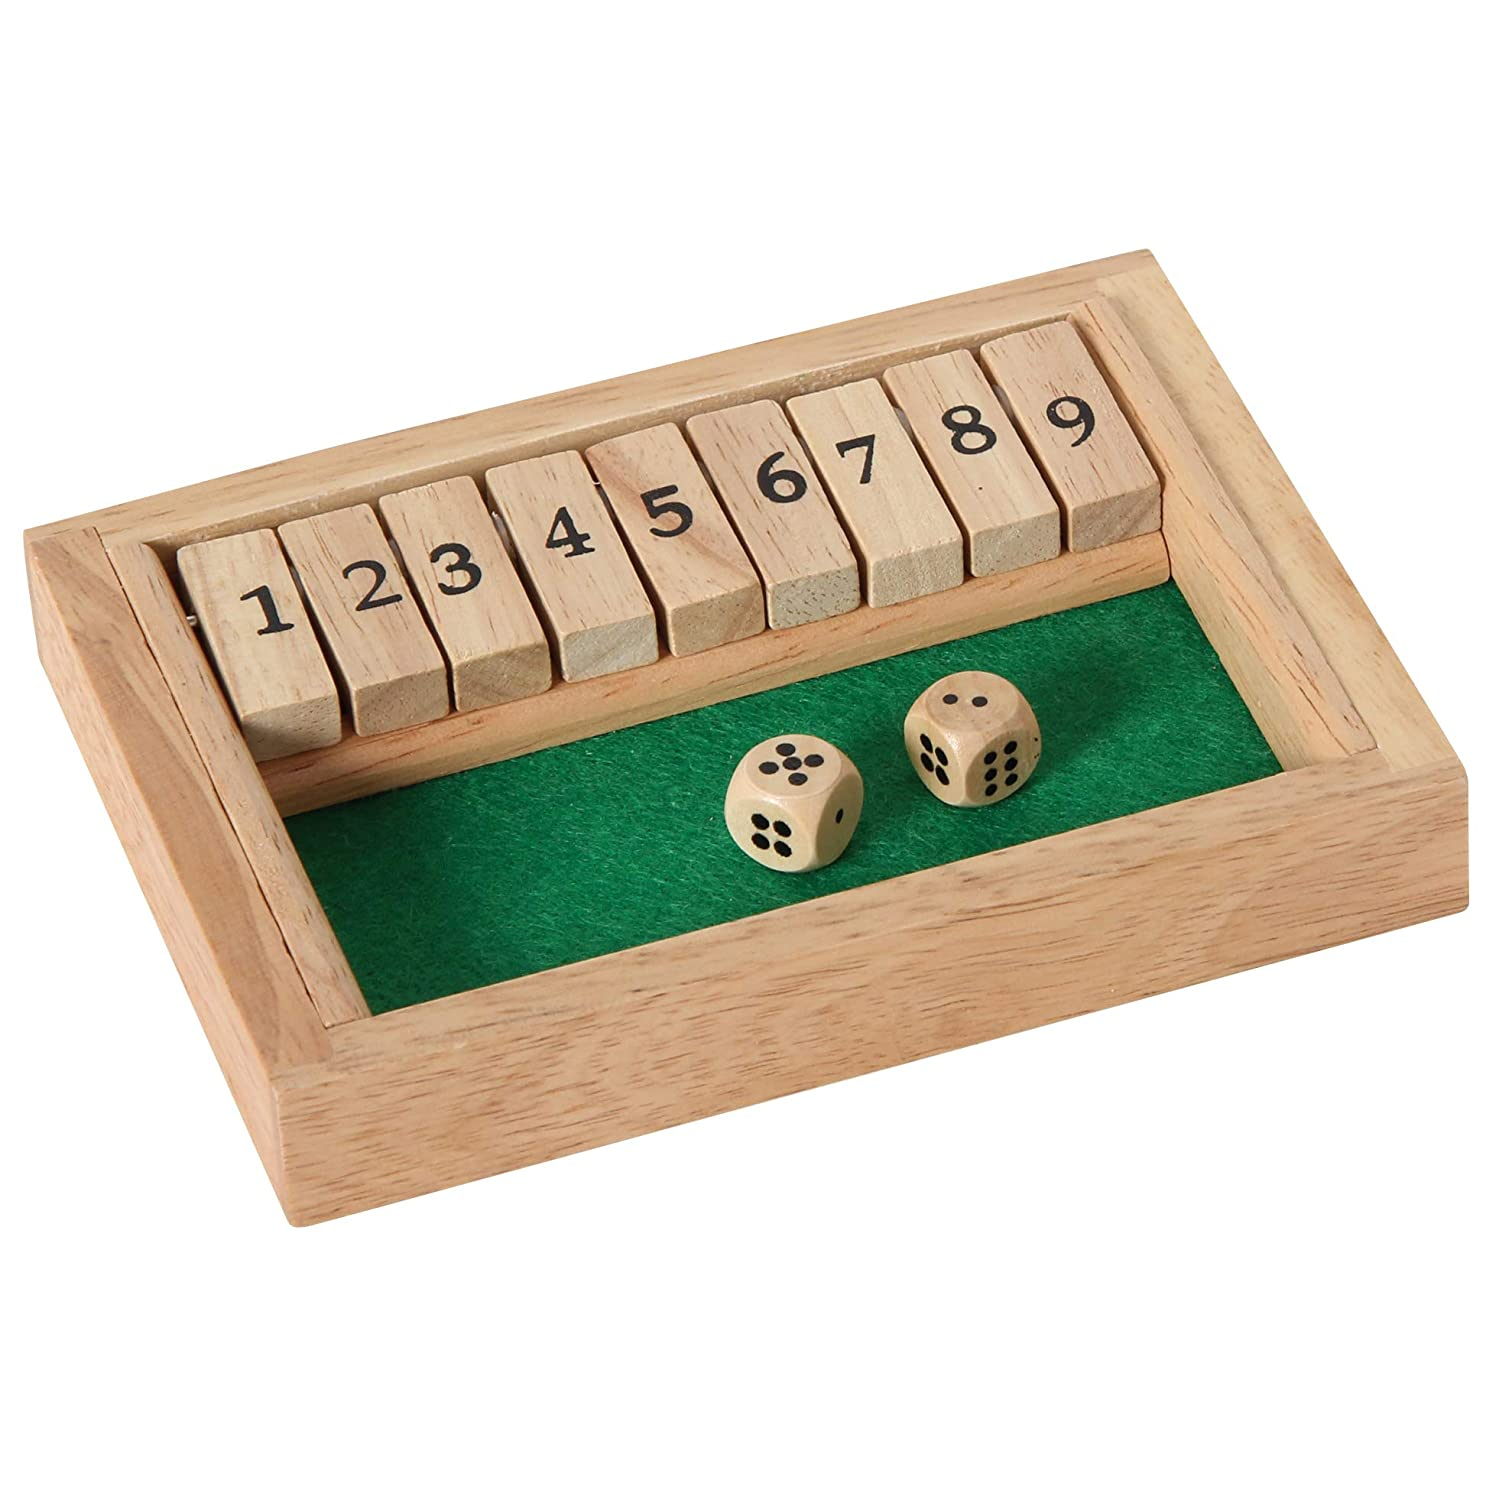 H Bartl 107990 flap game, Shut The Box, dice game, high quality made of beech wood, Made in Germany